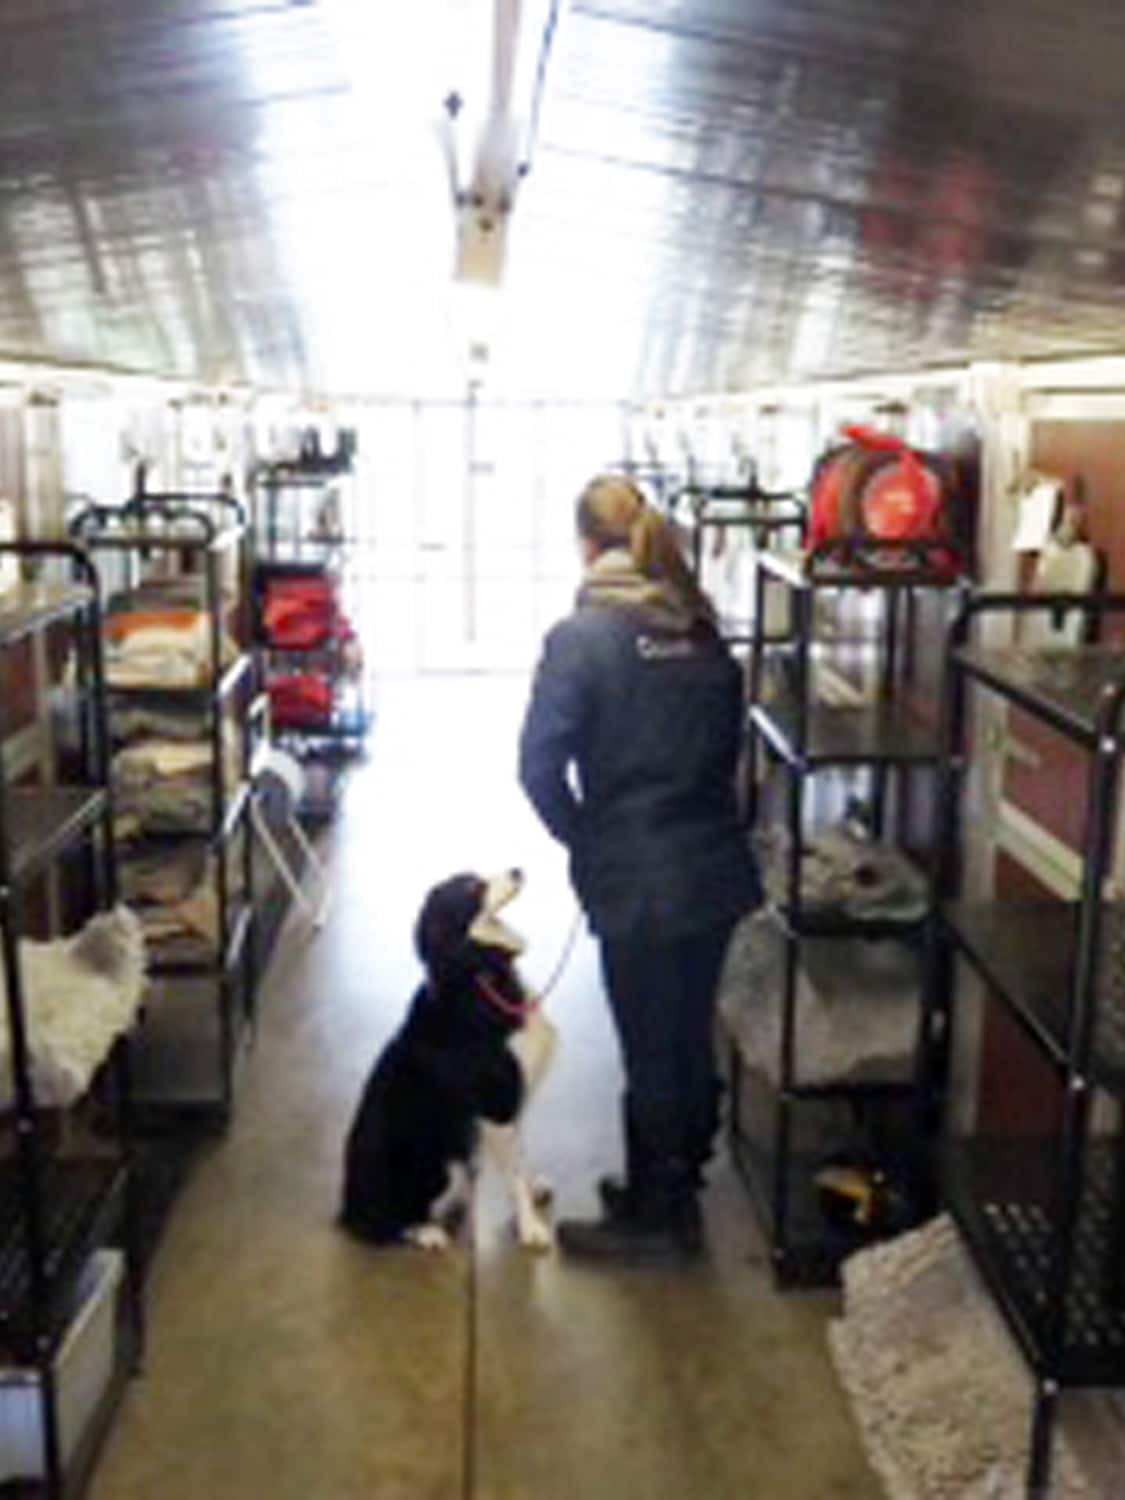 PHOTO - Internal view of kennel block